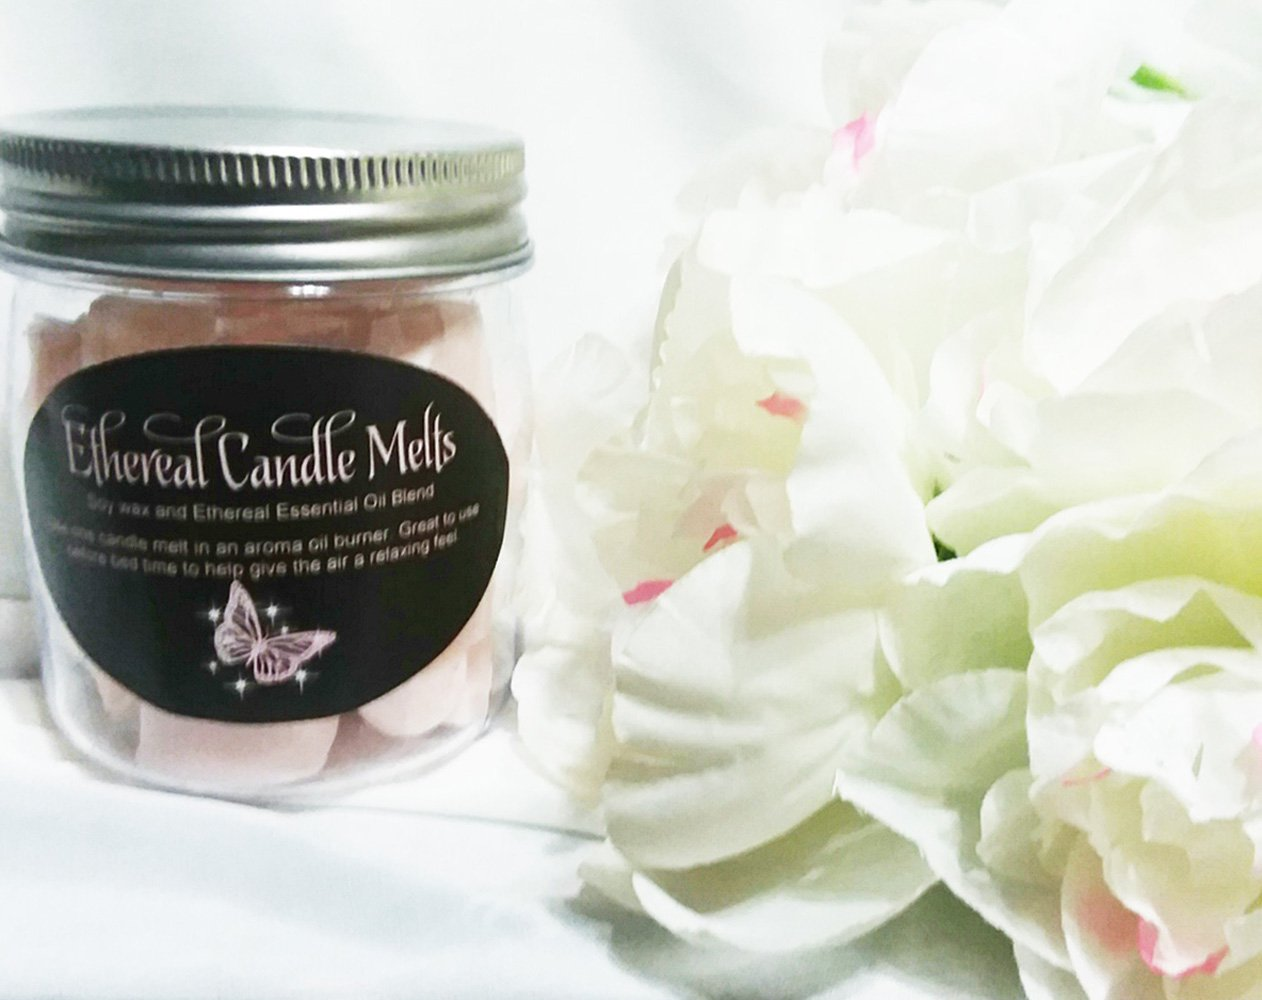 Ethereal Candle Melts